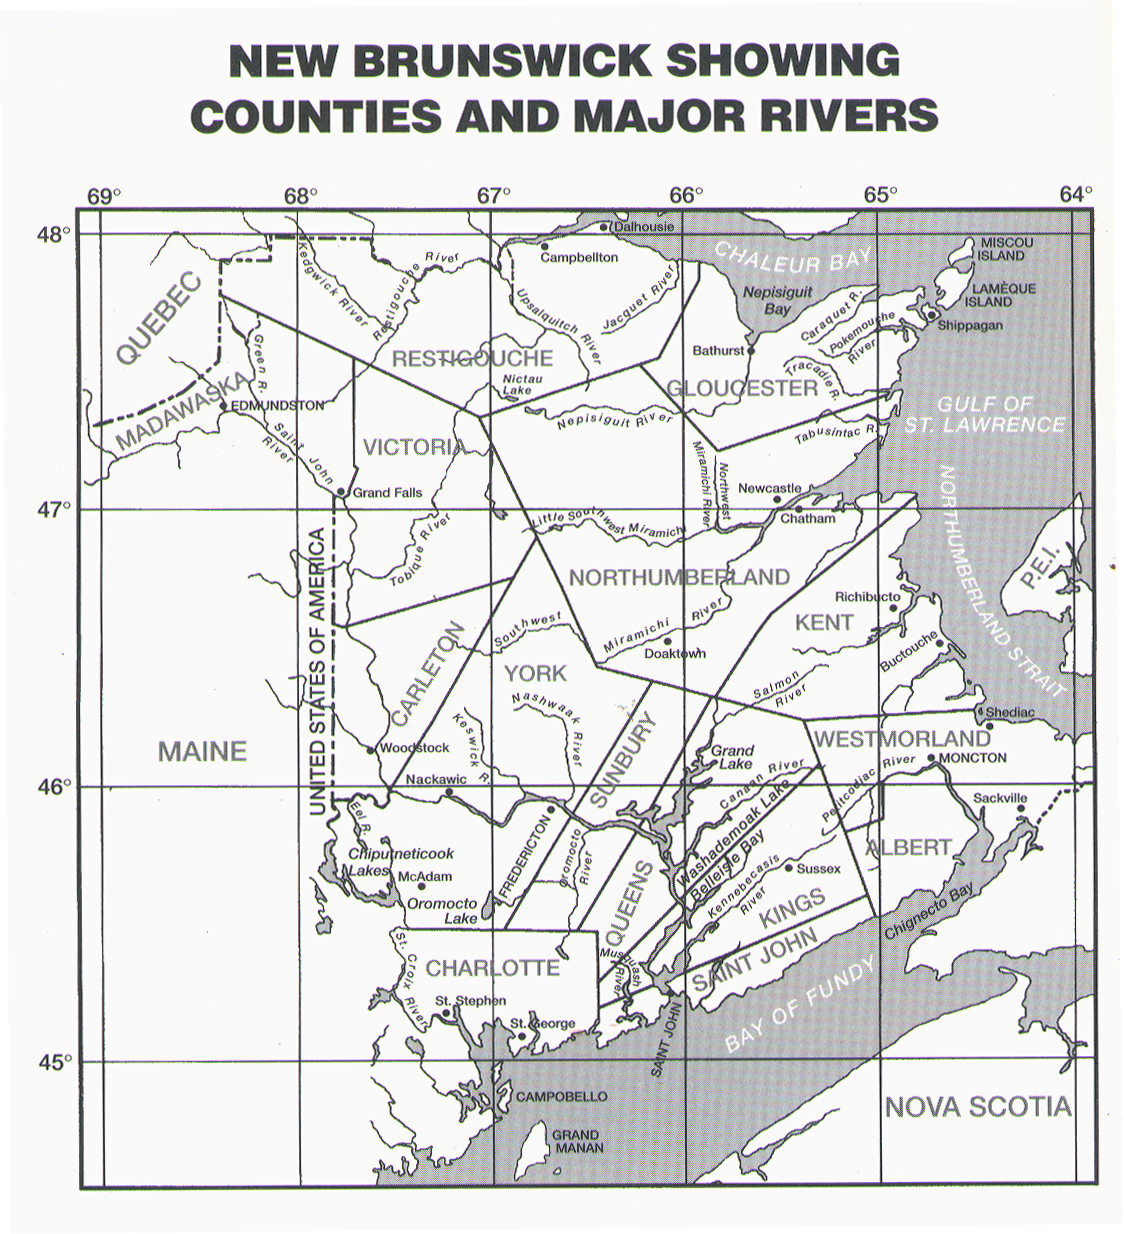 New Brunswick Showing Counties and Major Rivers